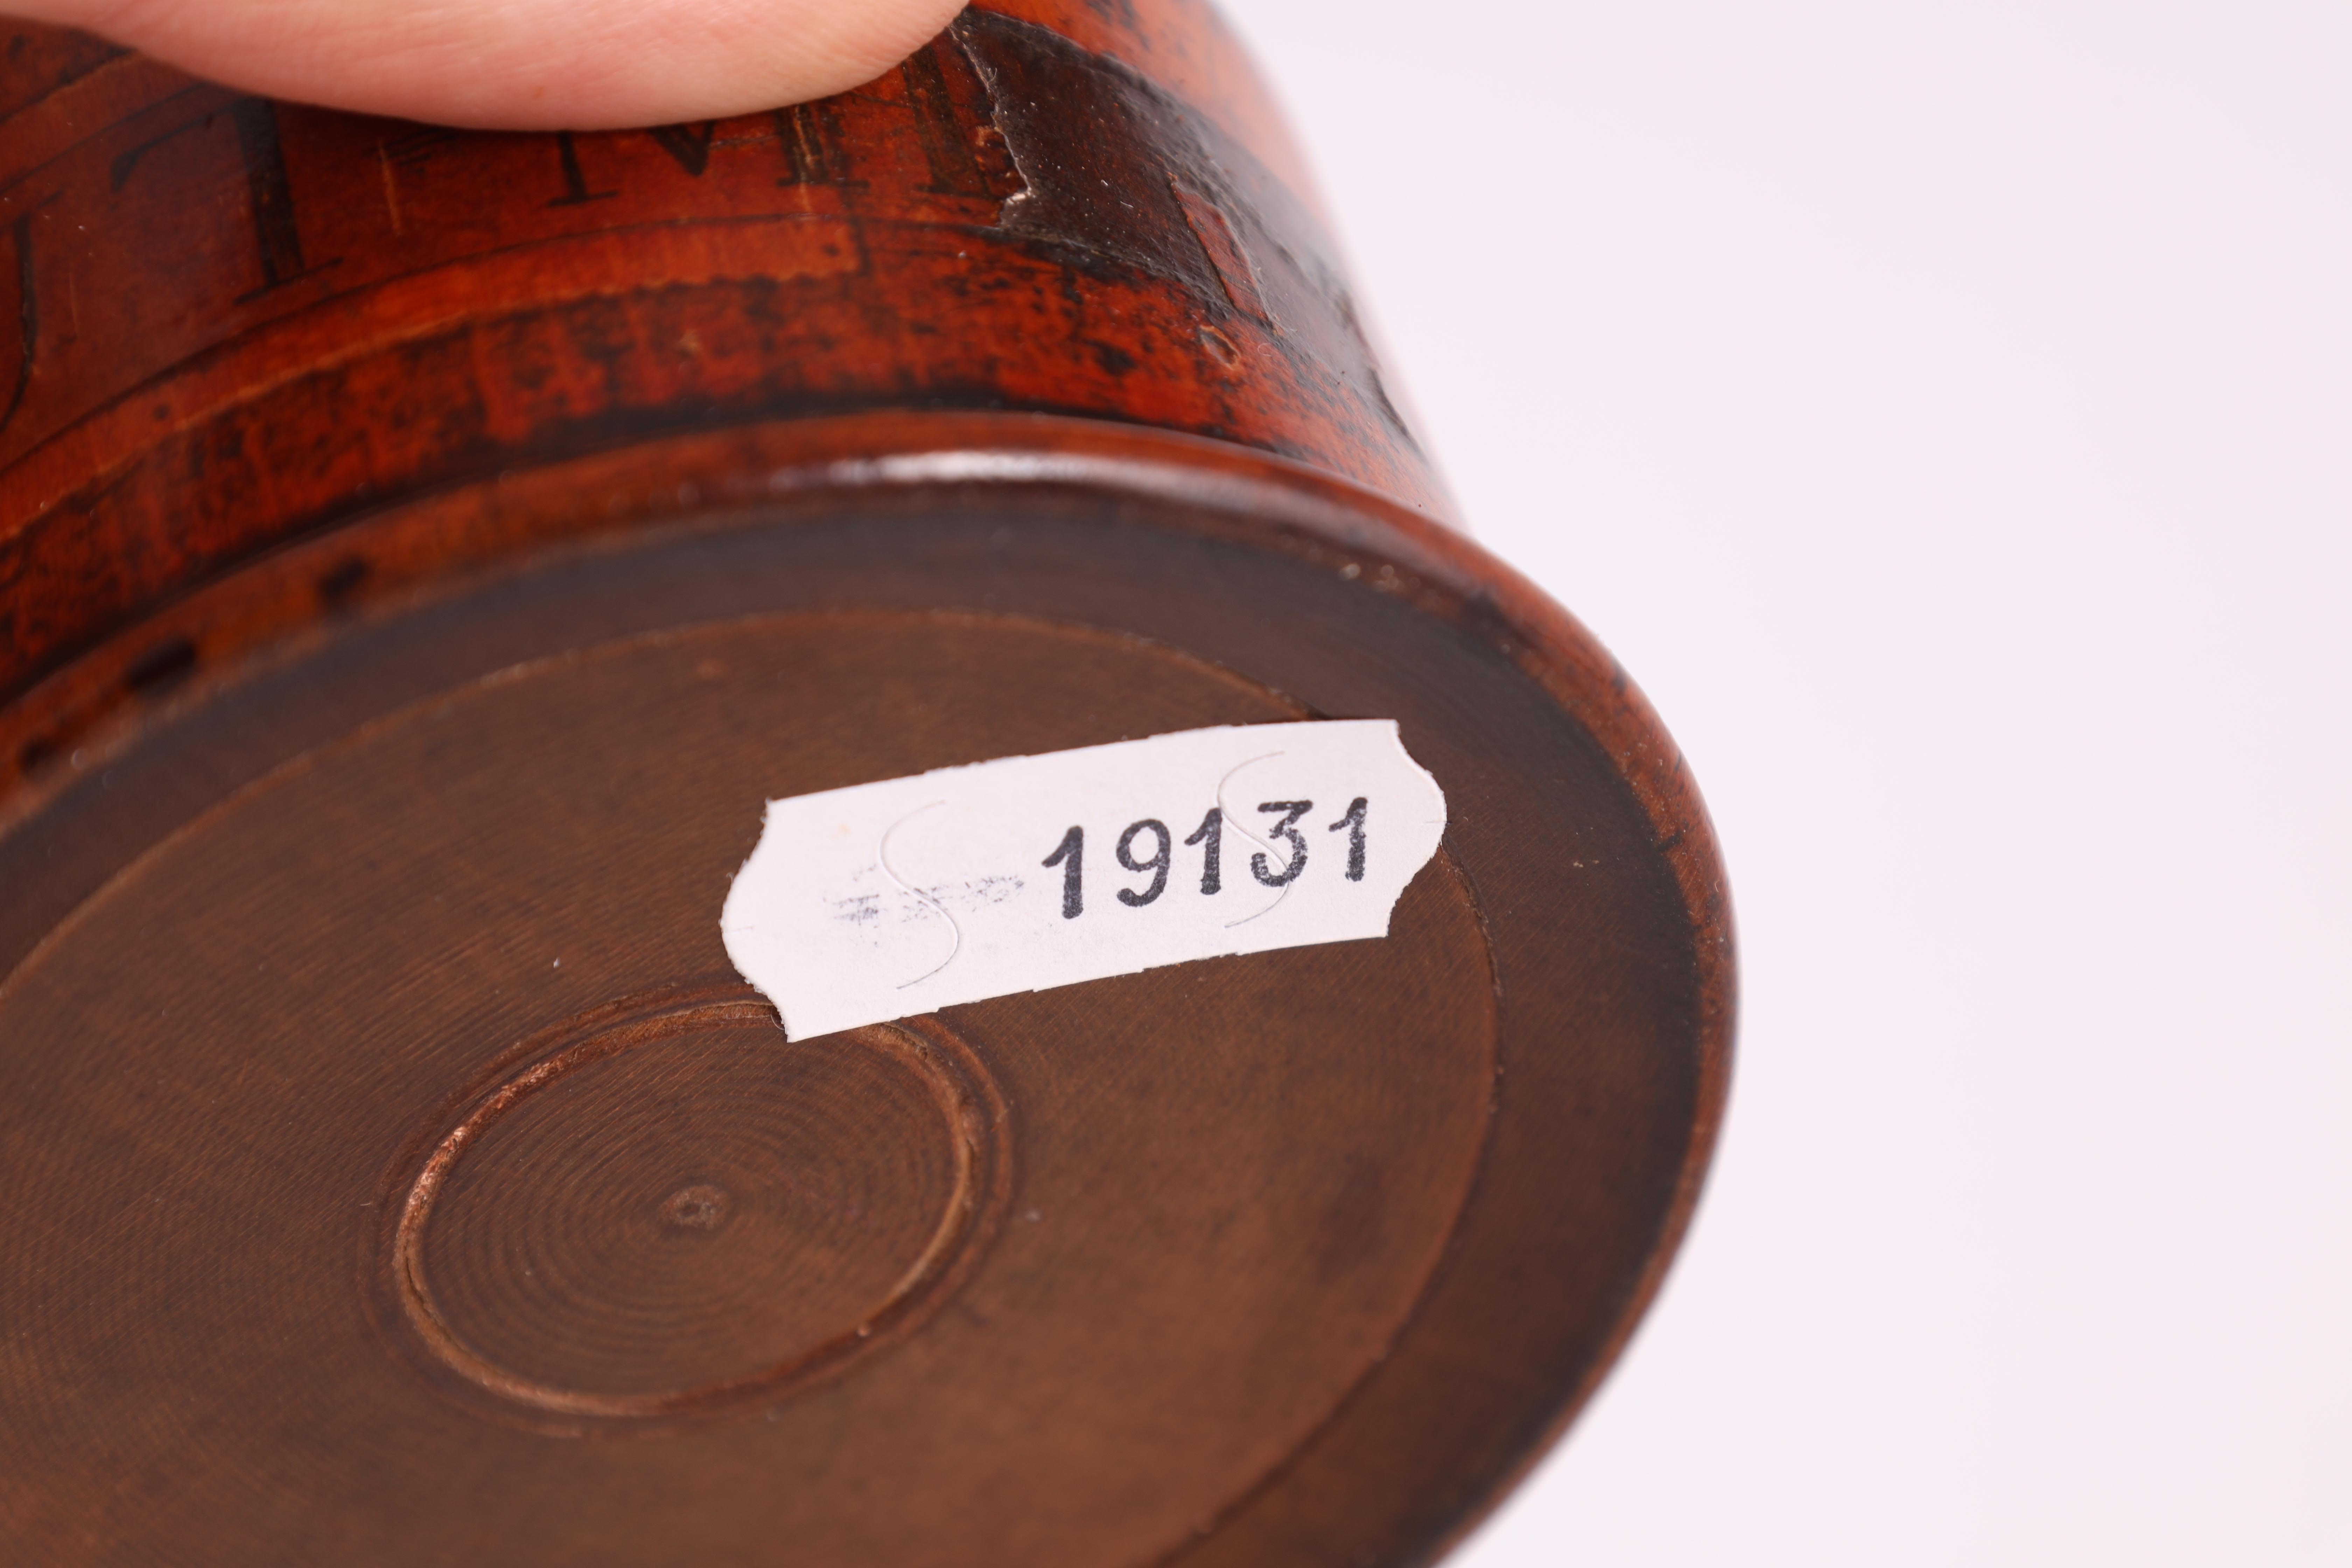 TWO EARLY 19TH CENTURY SYCAMORE TREEN SPICE TOWERS with original labels, the three stack 15cm - Image 6 of 13